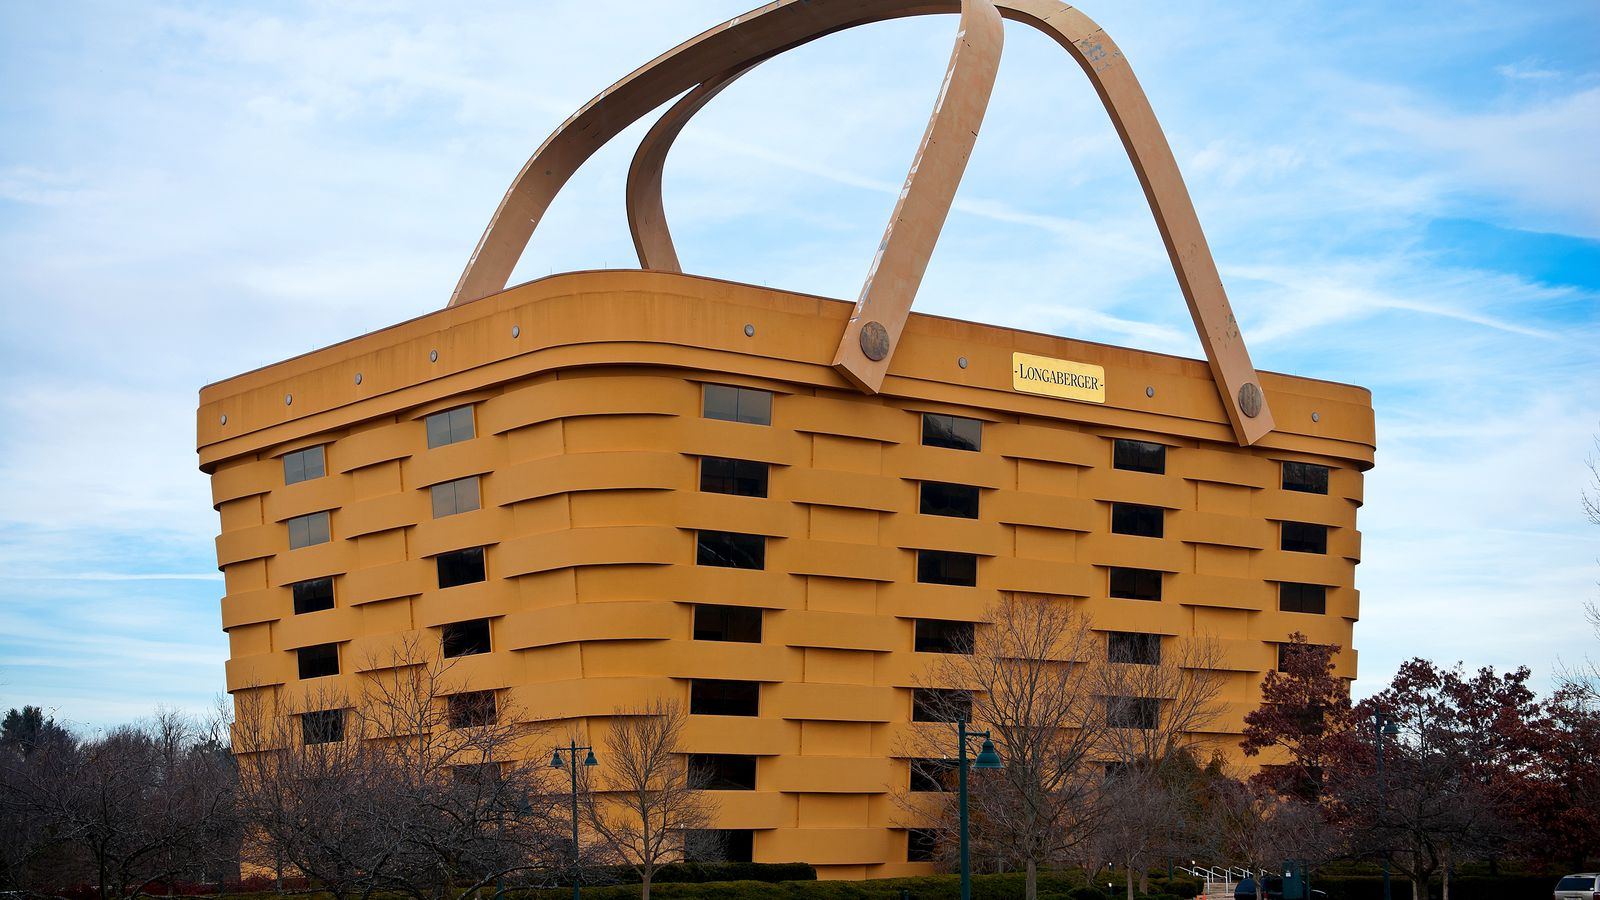 architecture buildings bizarre weird america most states united